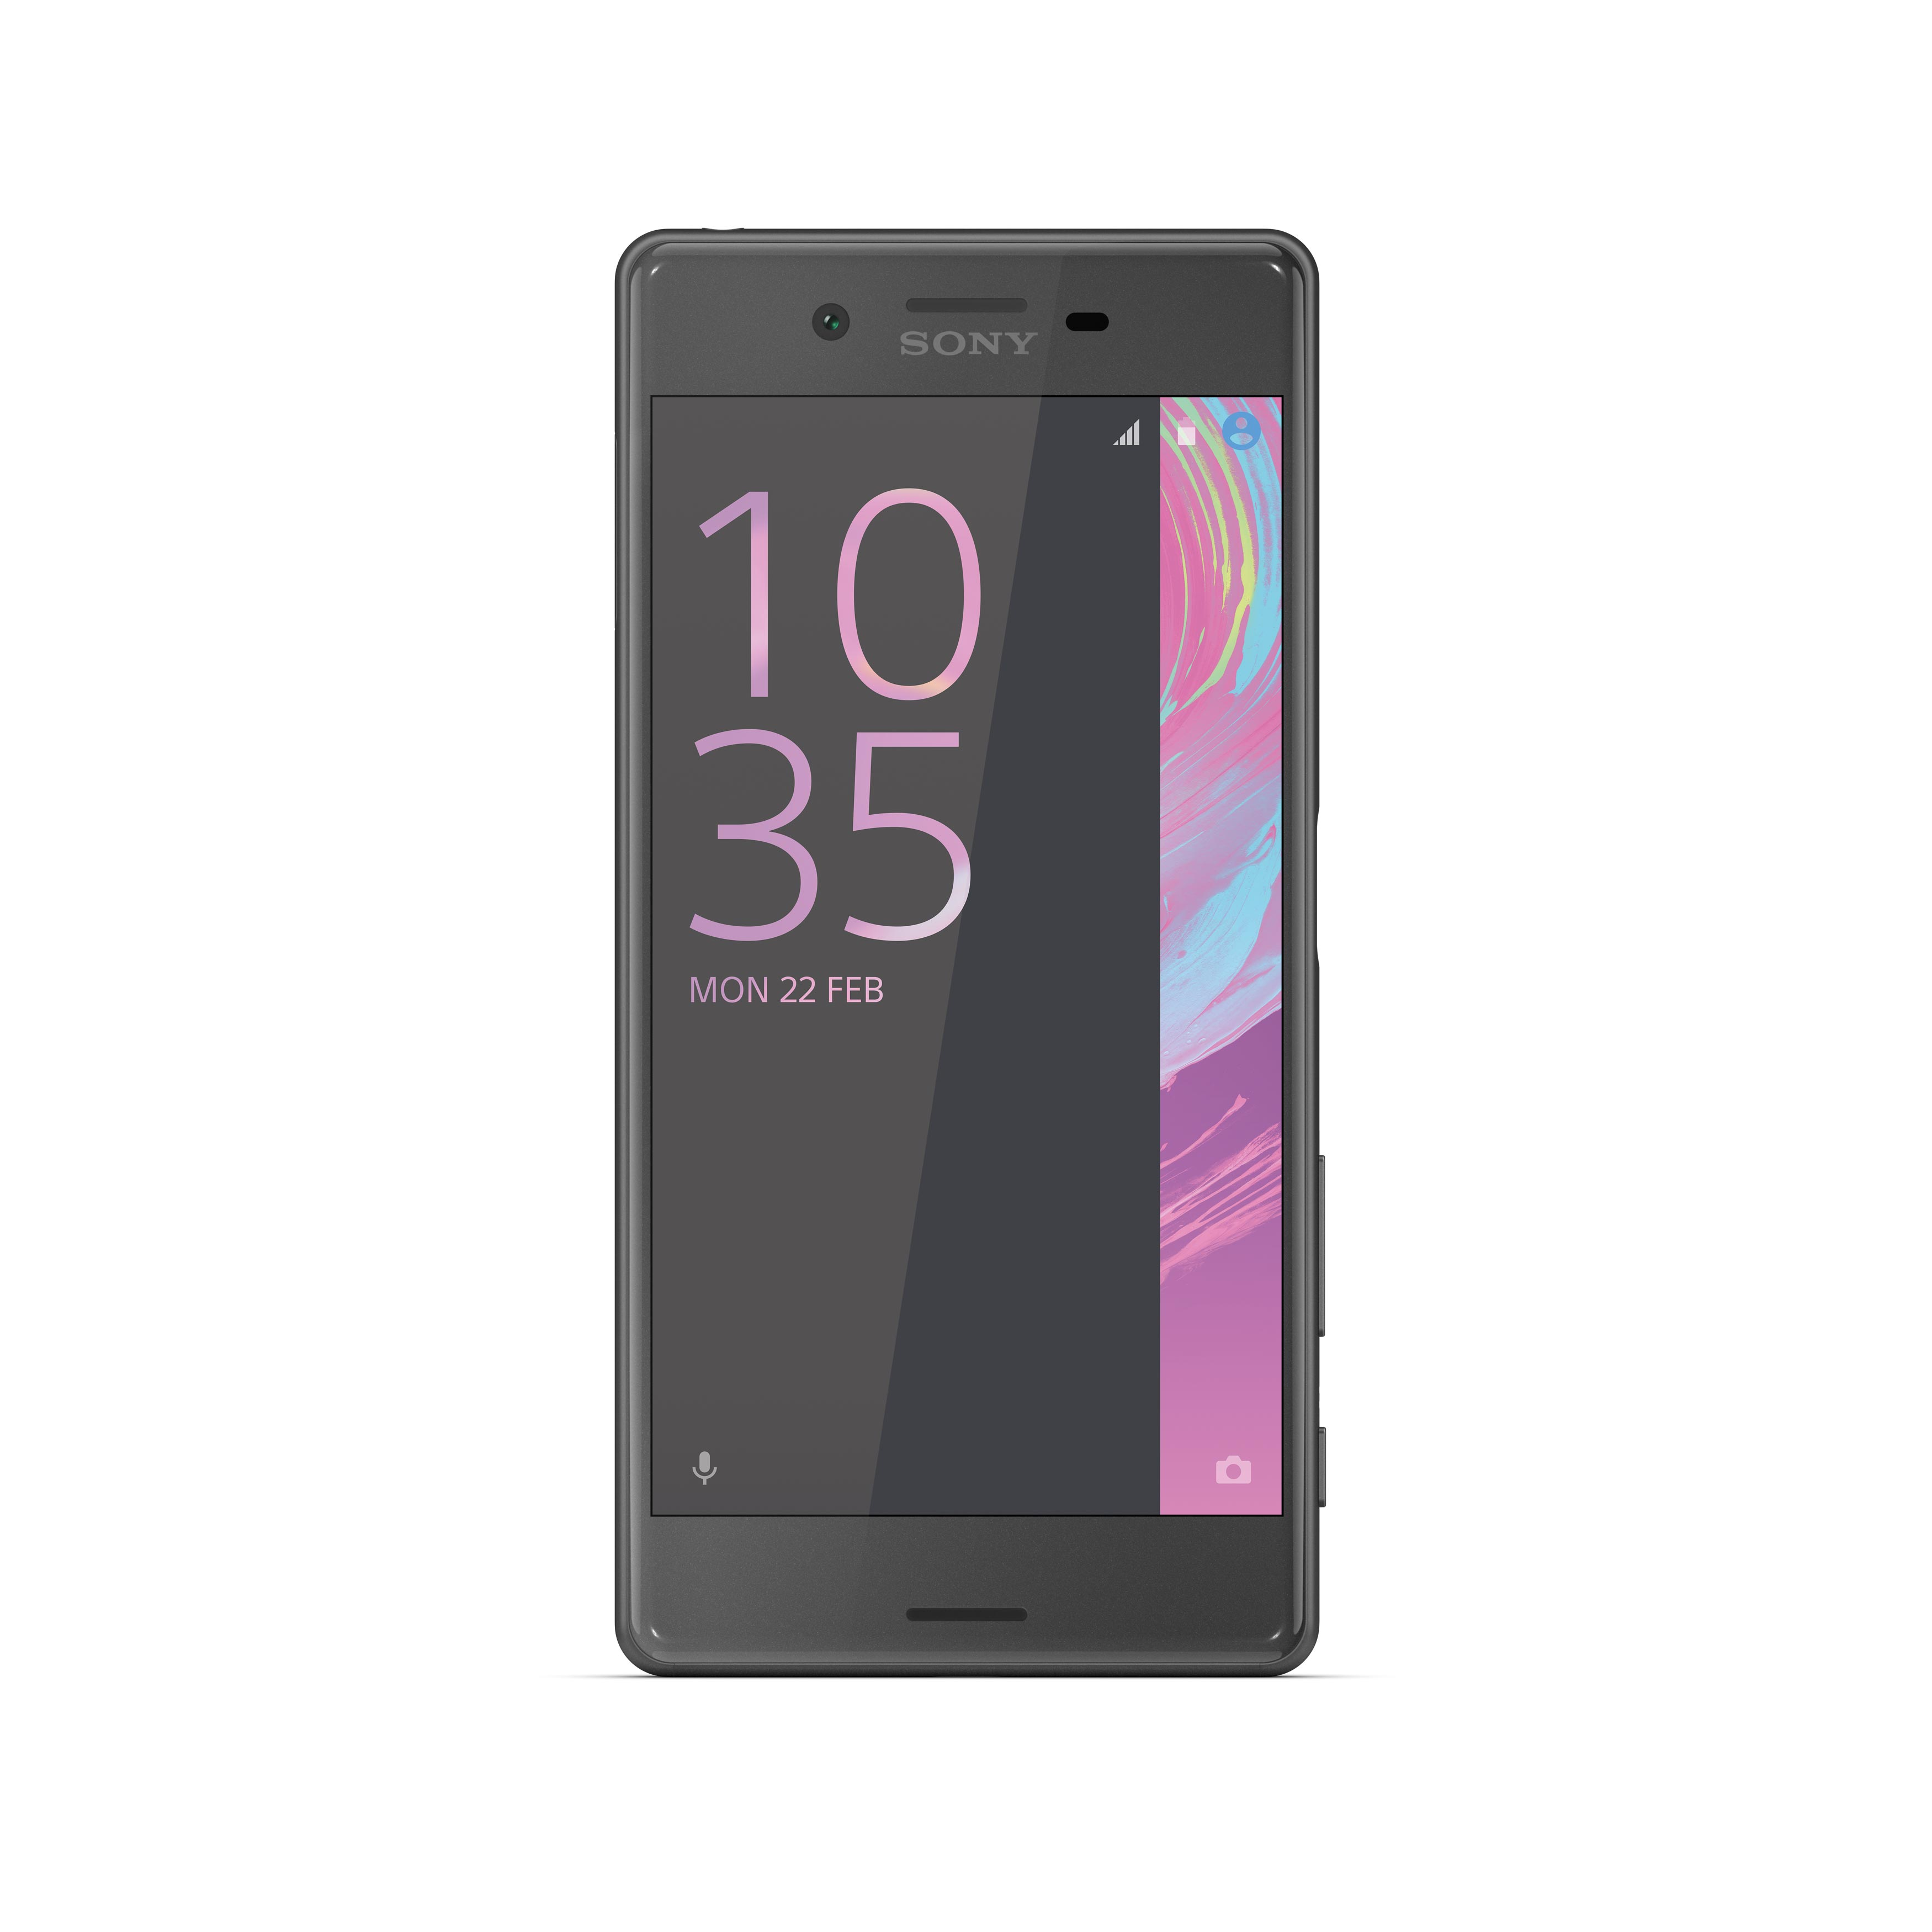 sony xperia x puts focus on the camera digital photography review. Black Bedroom Furniture Sets. Home Design Ideas